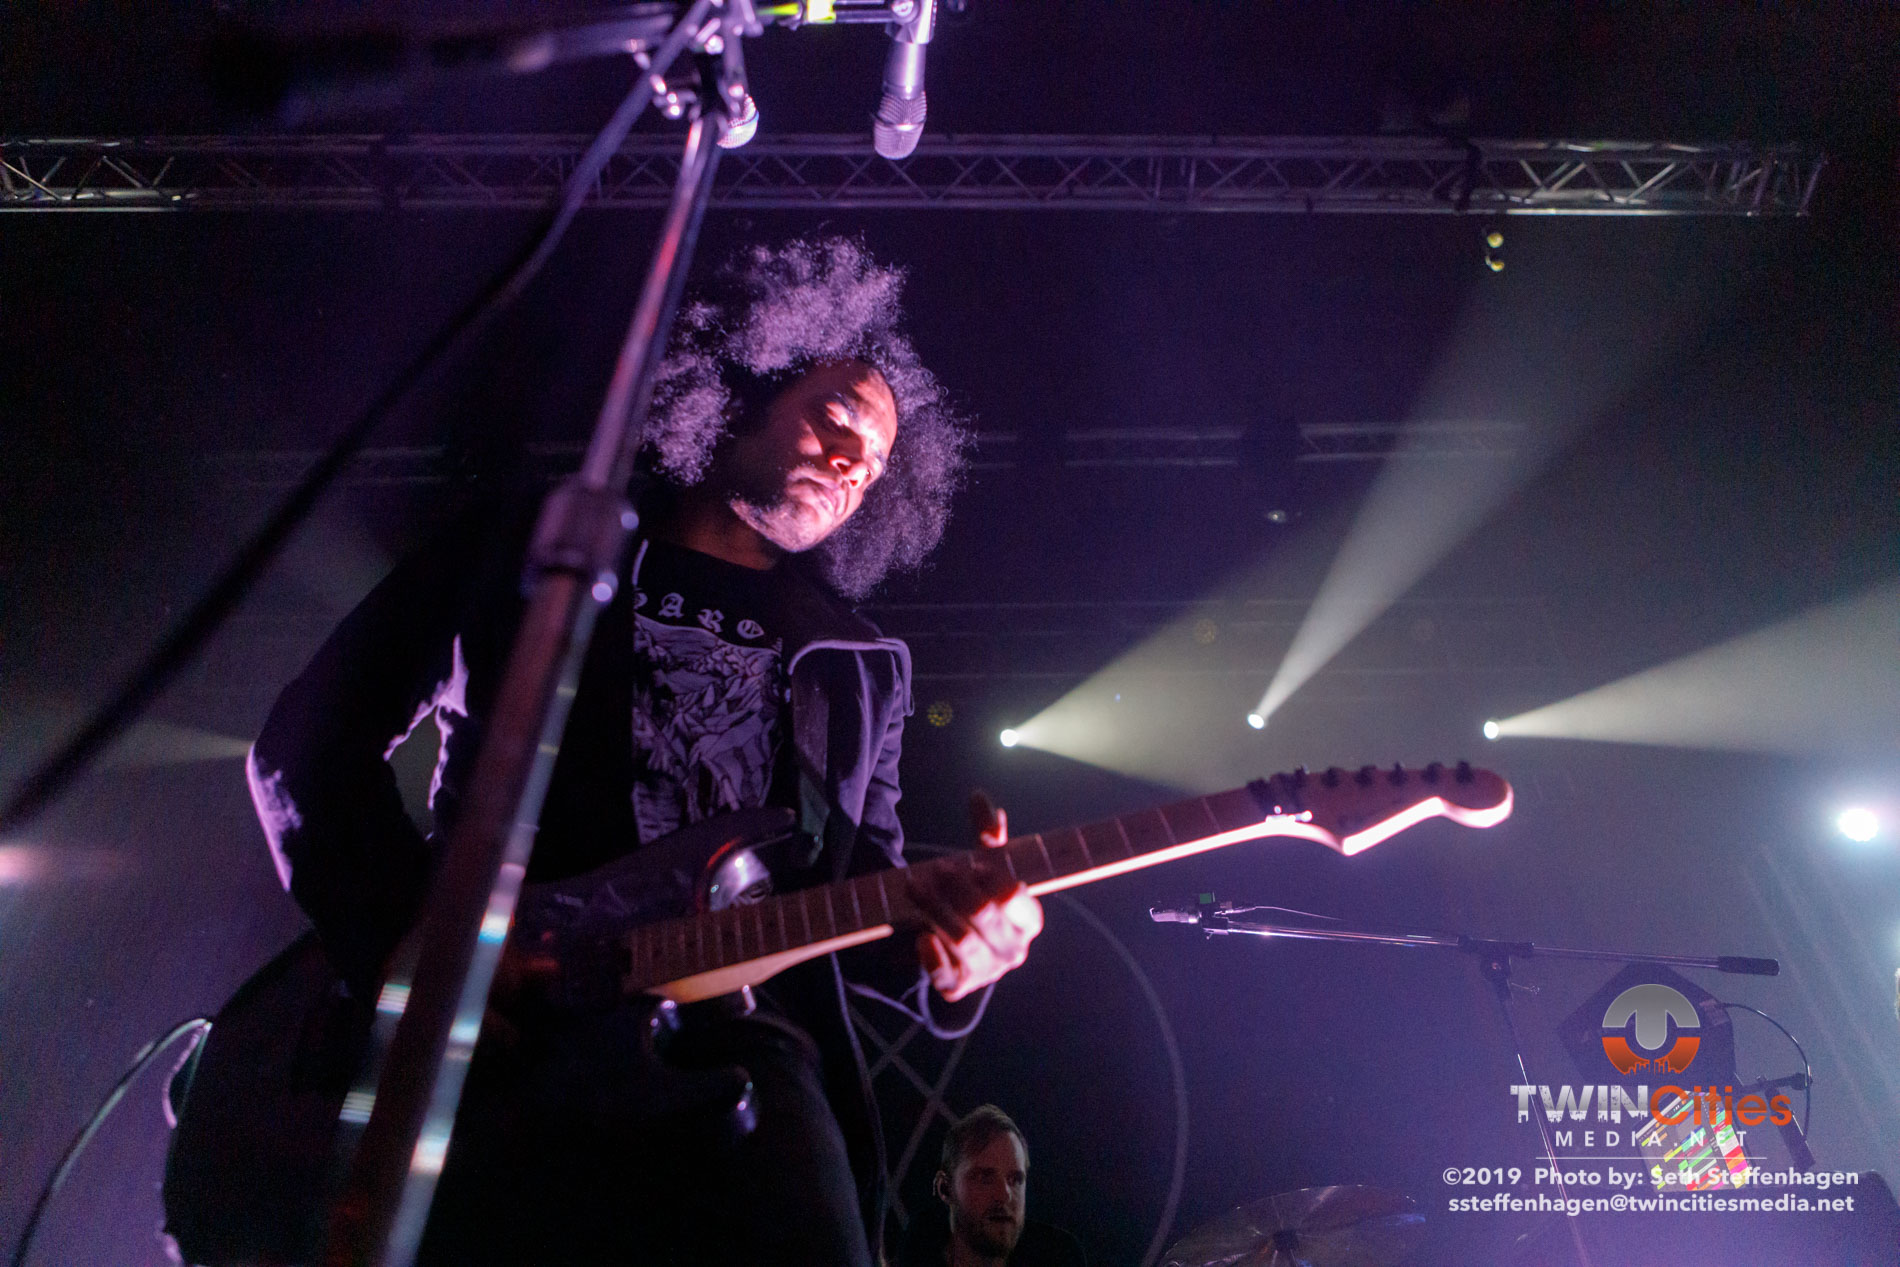 March 29, 2019 - Minneapolis, Minnesota, United States -  Zeal & Ardor live in concert at the Skyway Theatre opening for co-headliners Deafheaven and Baroness.  (Photo by Seth Steffenhagen/Steffenhagen Photography)